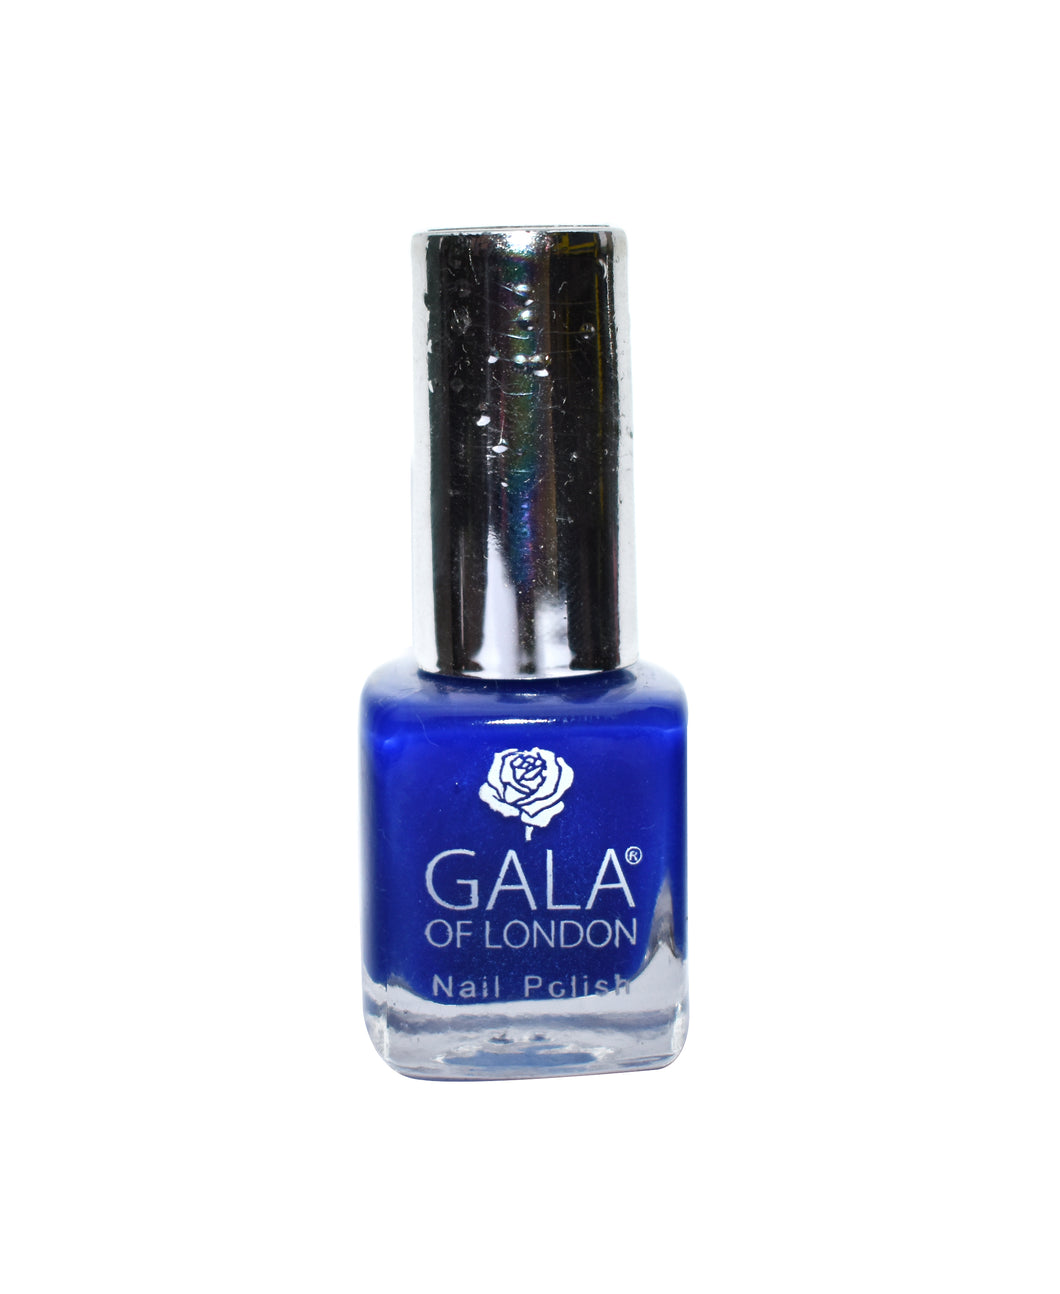 Gala of London Bridal Nail Polish - Glossy Blue BR17